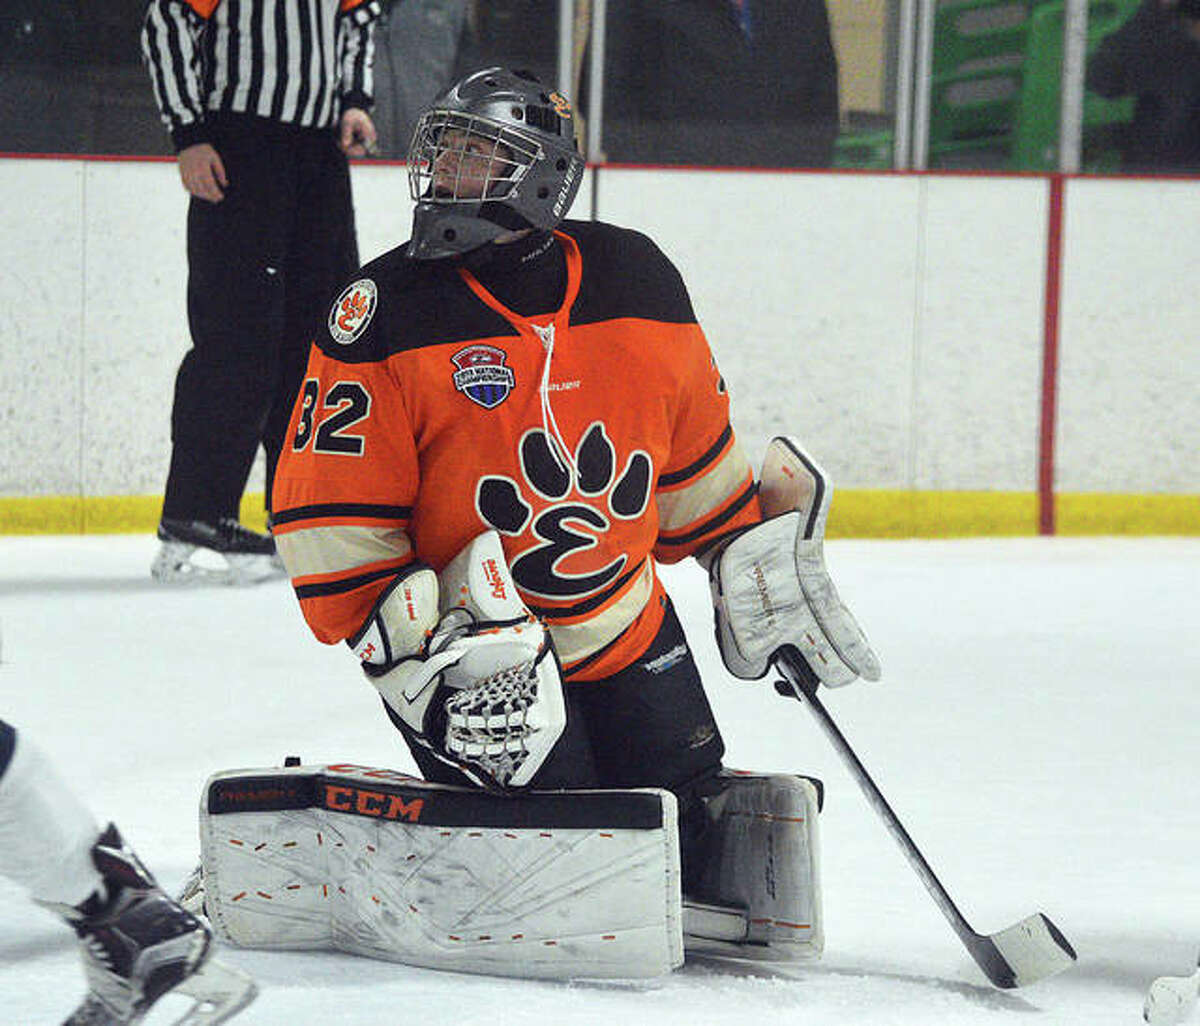 EHS goalie Mason Young finished the national tournament with a 2-2 record and a shutout.